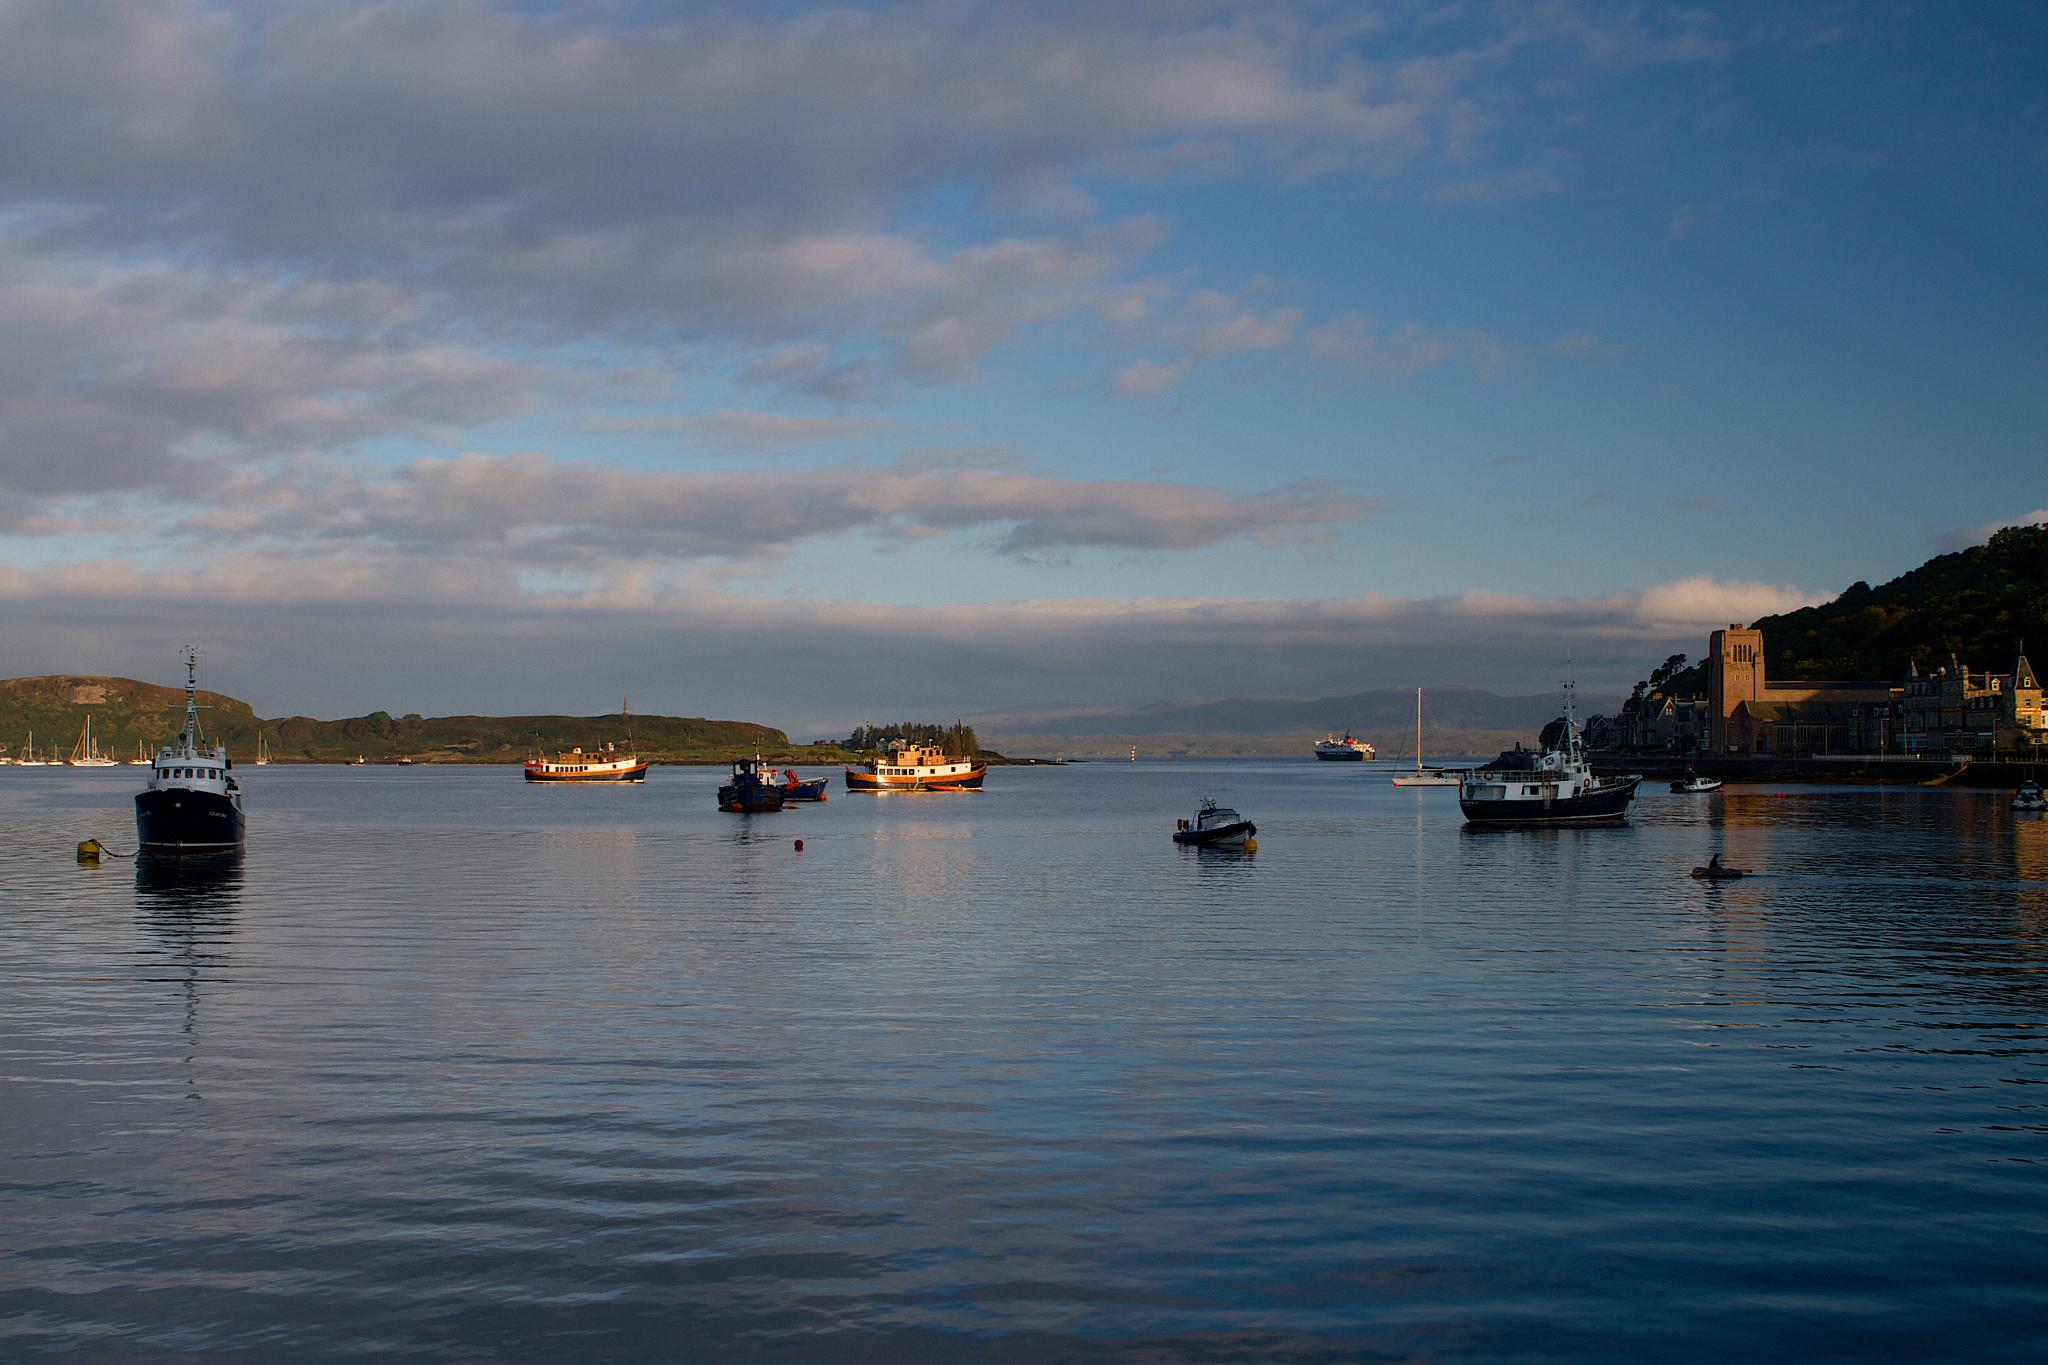 Early morning in Oban by Steve Blundell